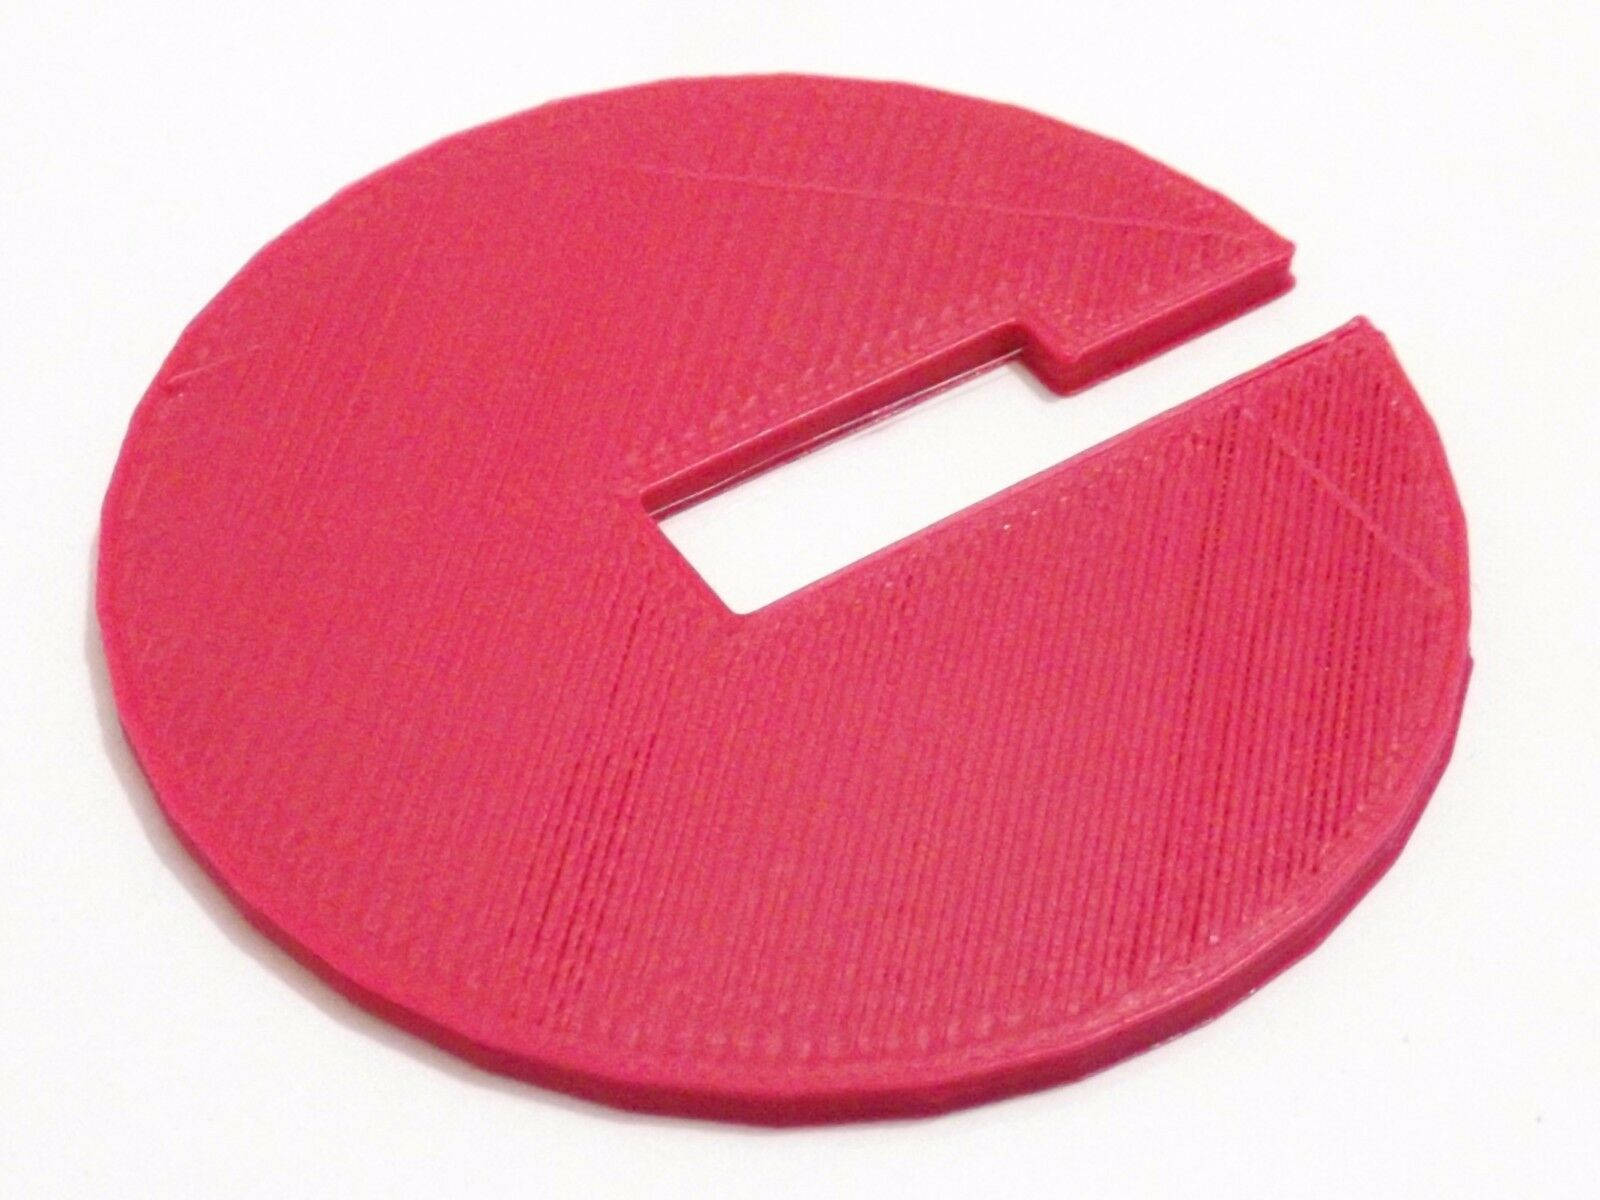 2 Pieces 10'' Craftsman Band Saw Insert, WORLDWIDE FREE SHIPPING - $29.69